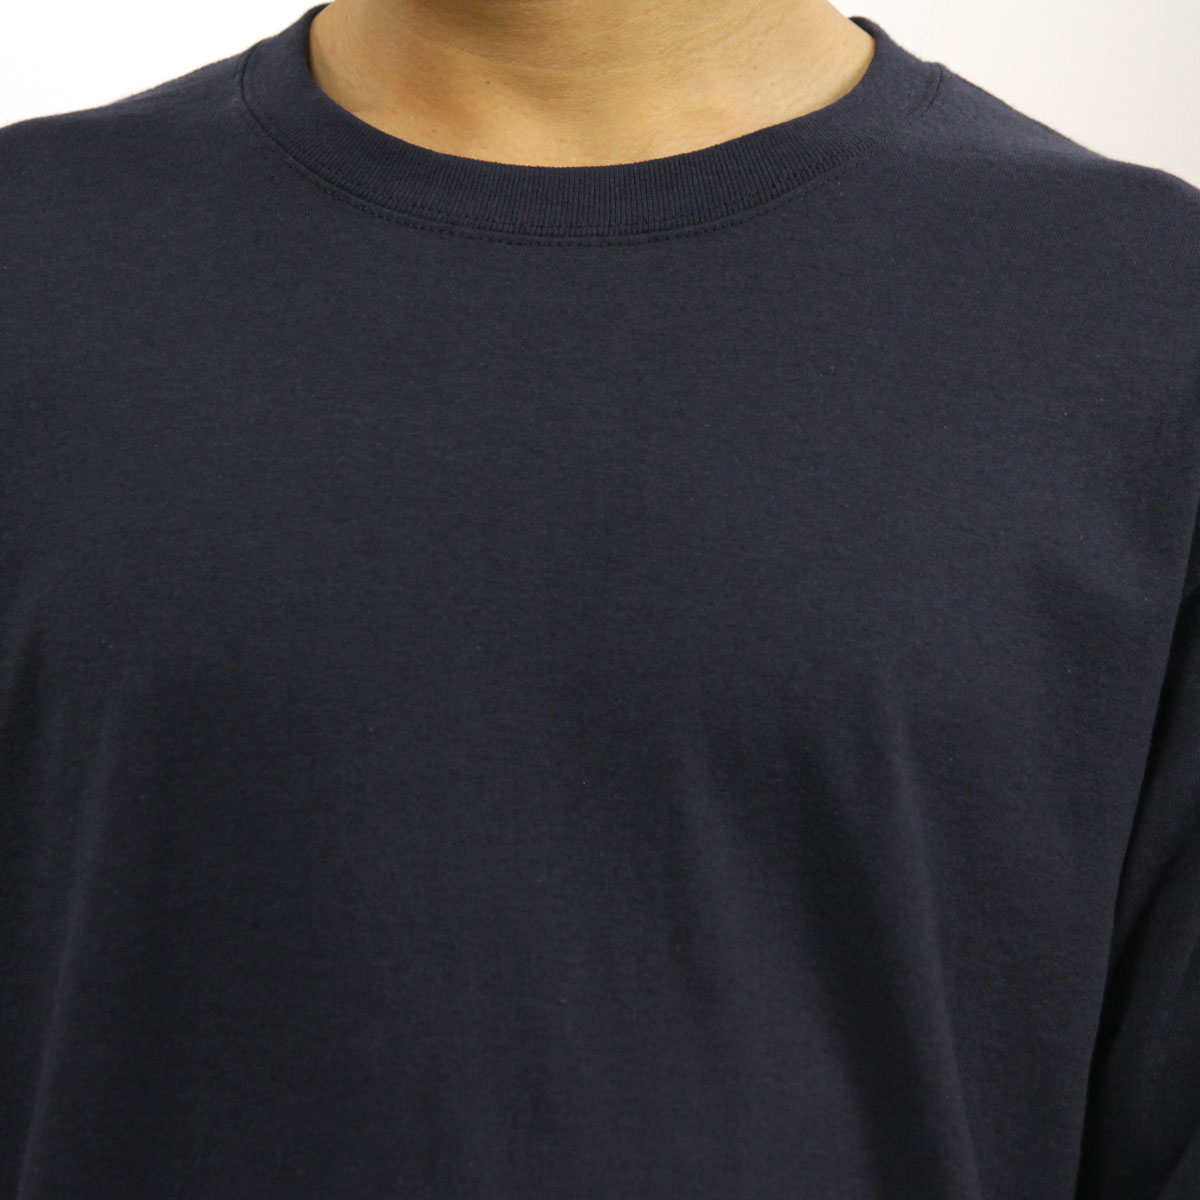 チャンピオン CHAMPION 正規品 メンズ 長袖Tシャツ L/S TEE T2229 Cotton Long Sleeve Tee 031-NAVY C logo on left sleeve